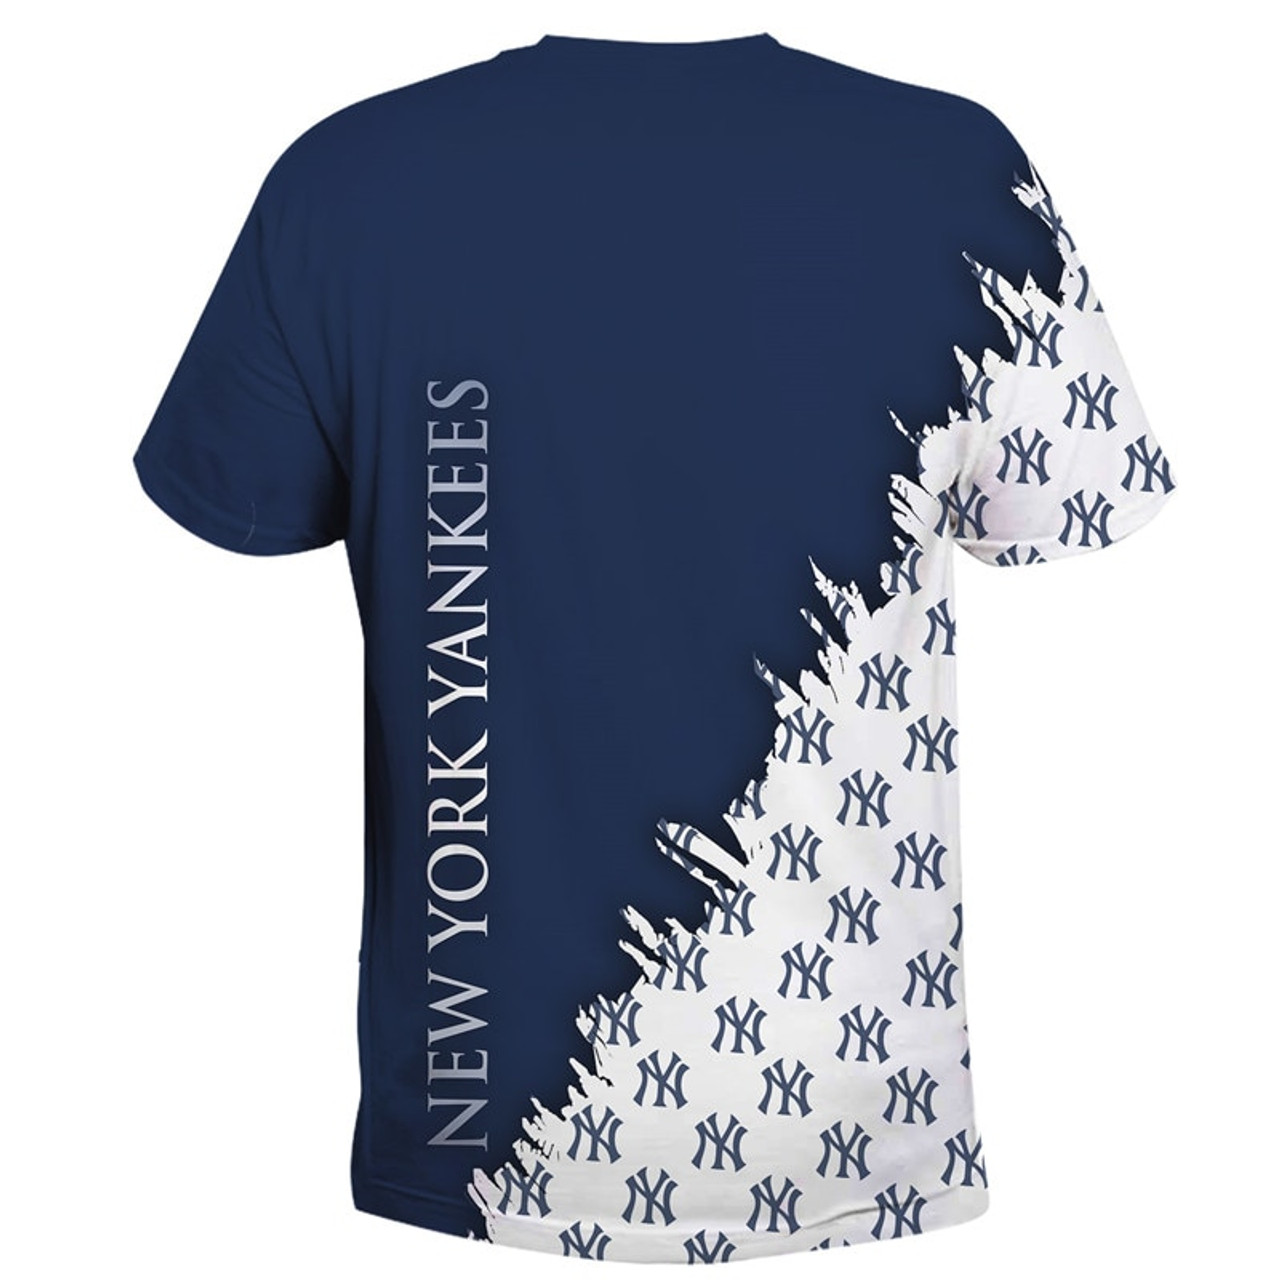 **(OFFICIALLY-LICENSED-M.L.B. NEW-YORK-YANKEES-TEAM-TEES/NICE-CUSTOM-DETAILED-3D-GRAPHIC-PRINTED/PREMIUM-ALL-OVER-DOUBLE-SIDED-PRINT/OFFICIAL-YANKEES-TEAM-COLORS & CLASSIC-YANKEES-BASEBALL-3D-GRAPHIC-LOGOS/PREMIUM-YANKEES-TEAM-TEES)**